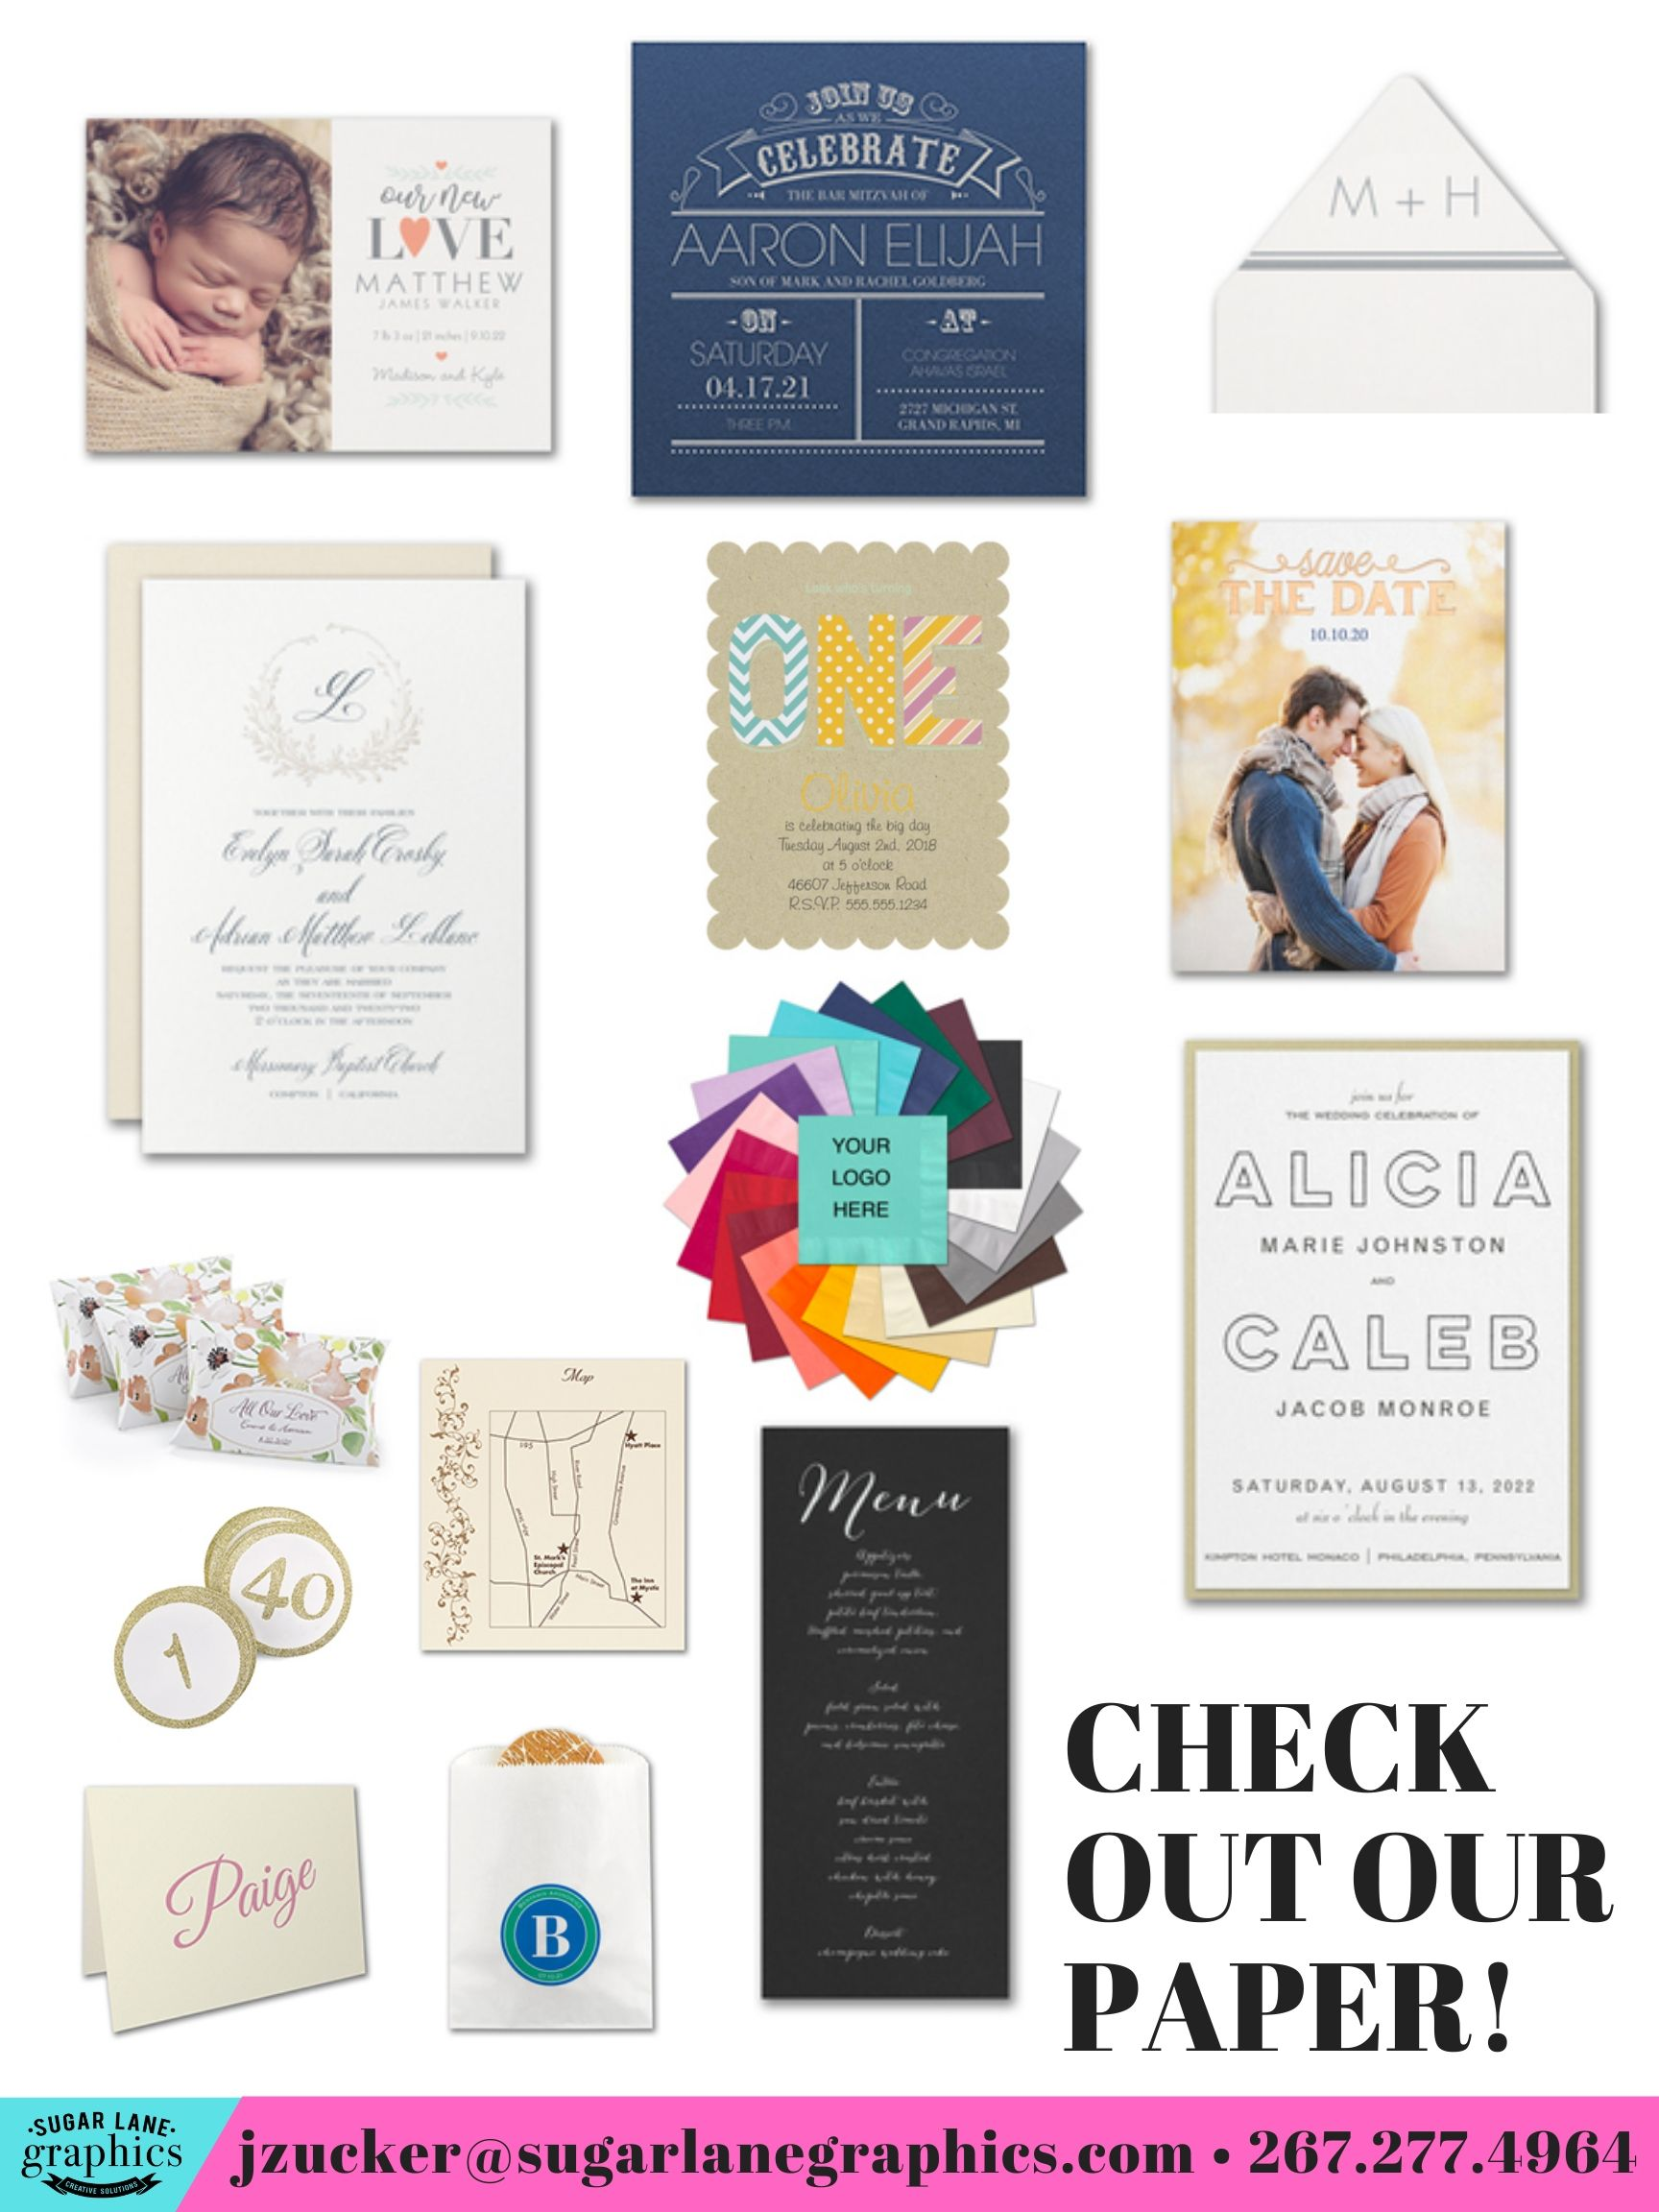 Custom Social Stationery